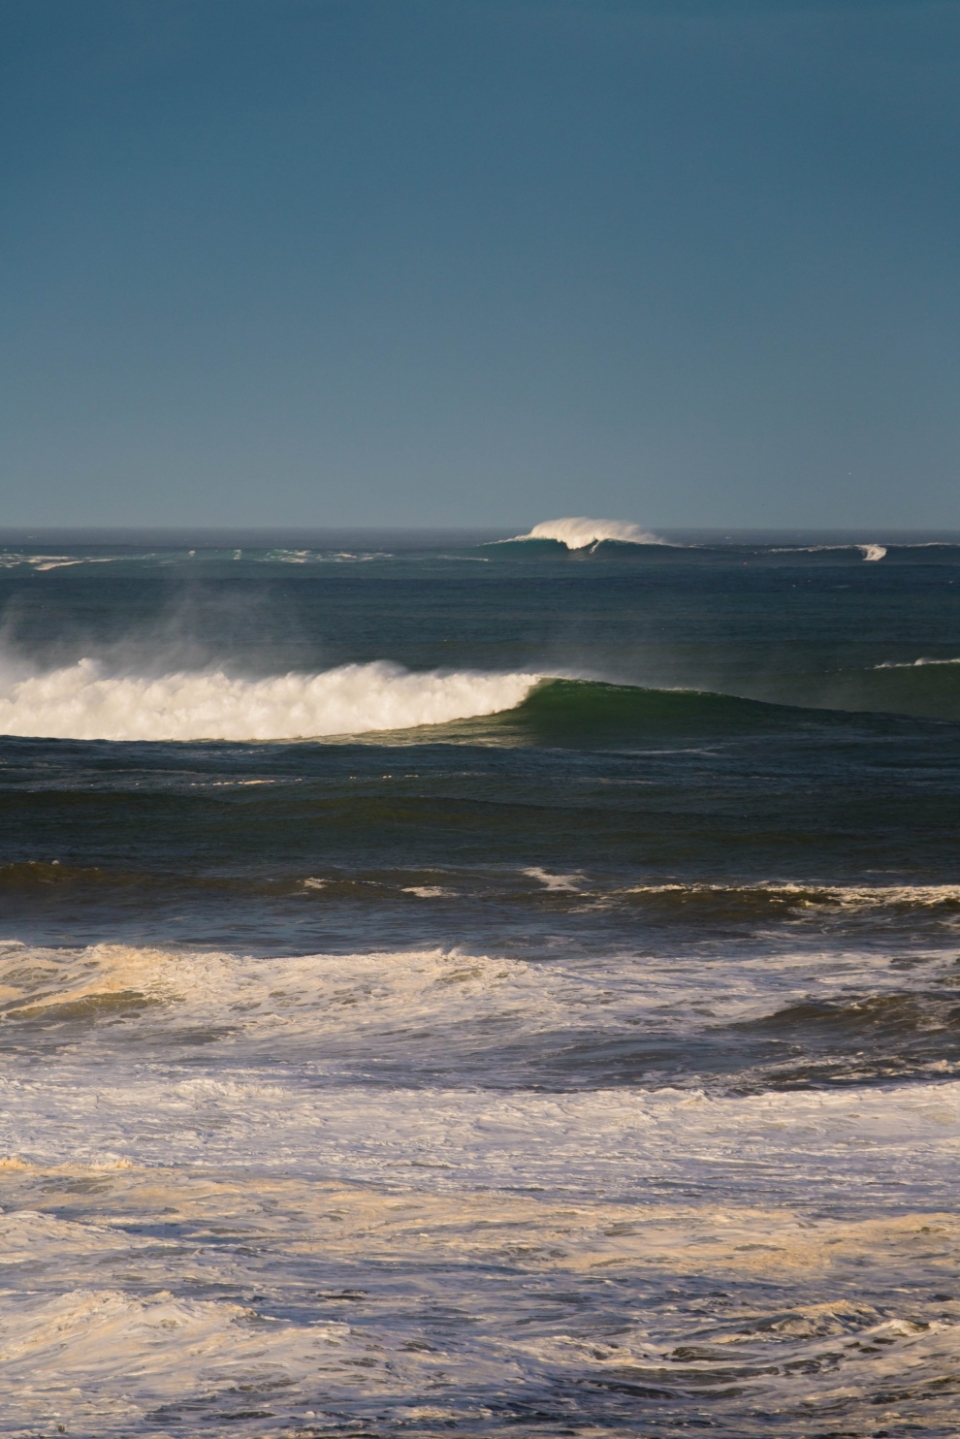 Squint your eyes and you can  make out a small white line splicing through a Belharra bomb. Stephanie Ralour and Alain Riou were among the few to take on Fance's best known XXL wave.